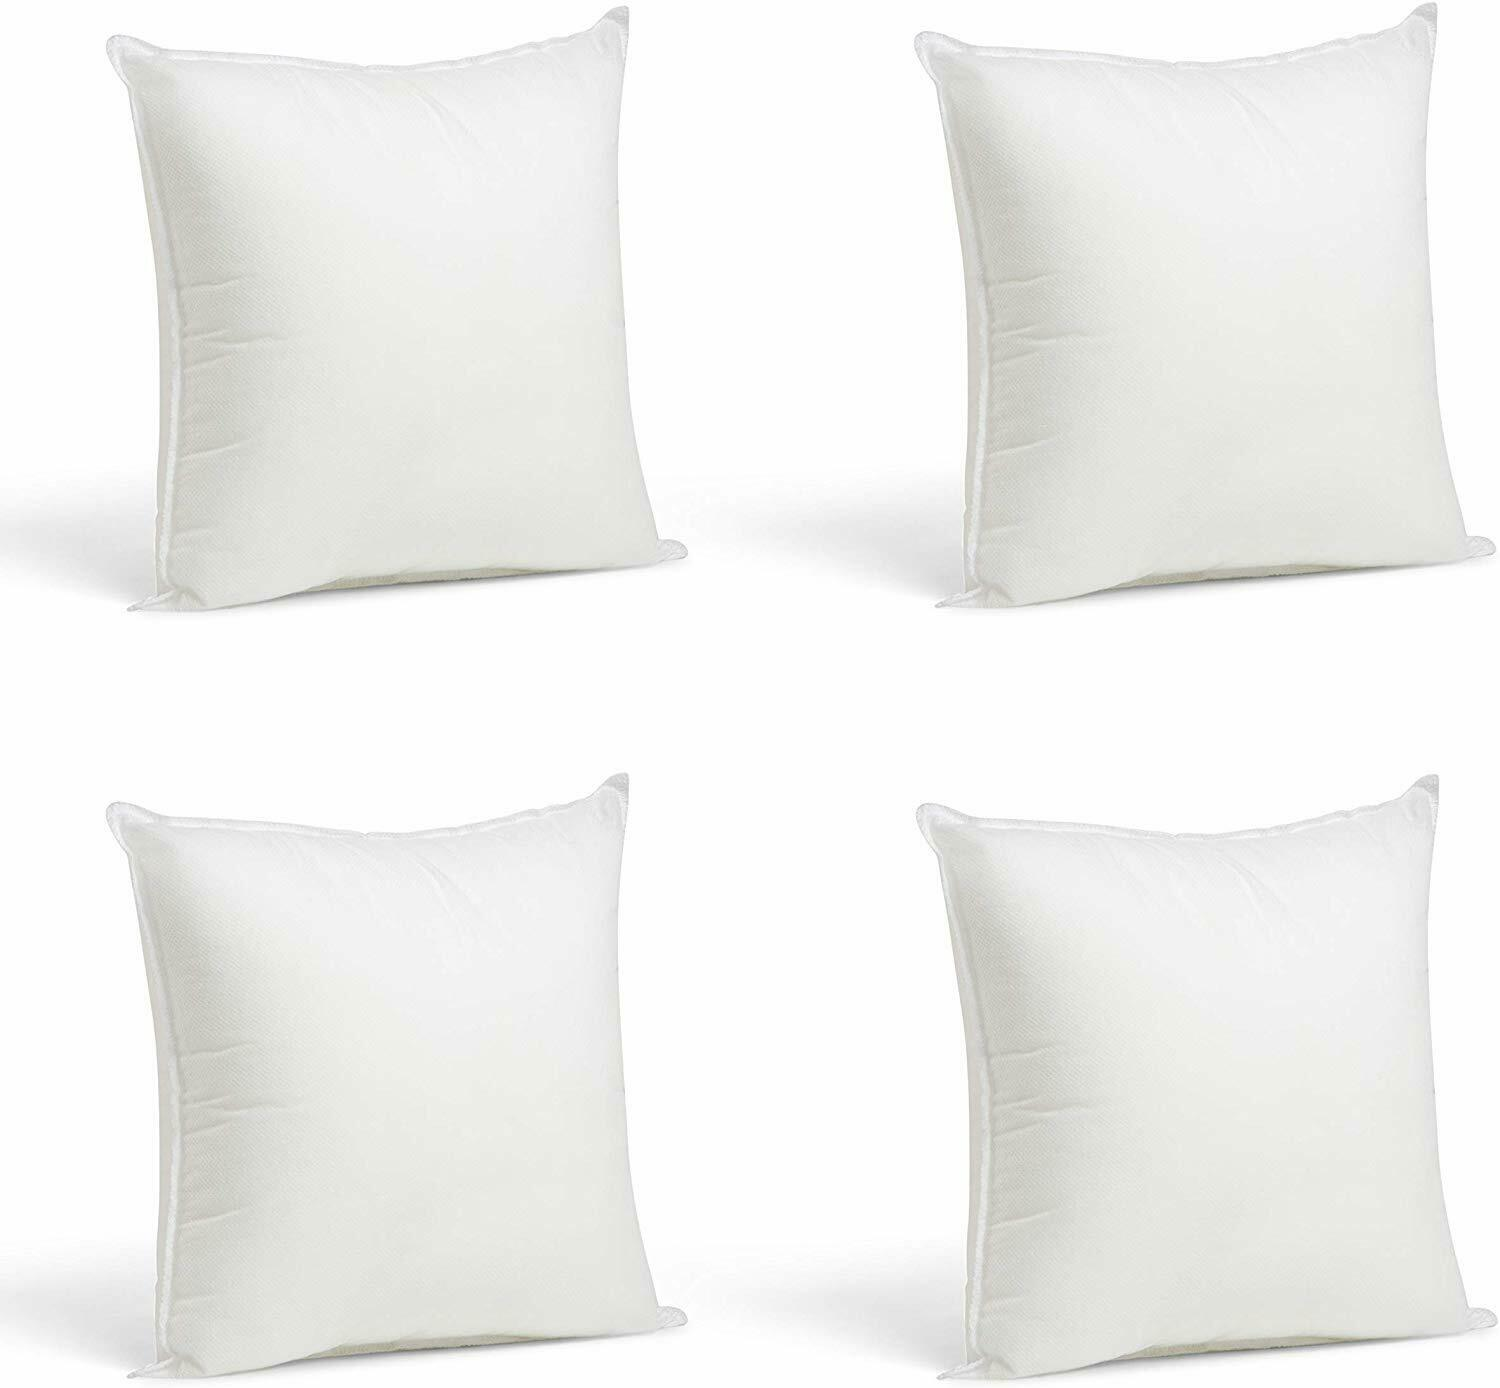 ANA Cushion Filler Throw Pillow Inserts Hypoallergenic Square Form Sham Stuffer 4 pcs Pack in18 x 18